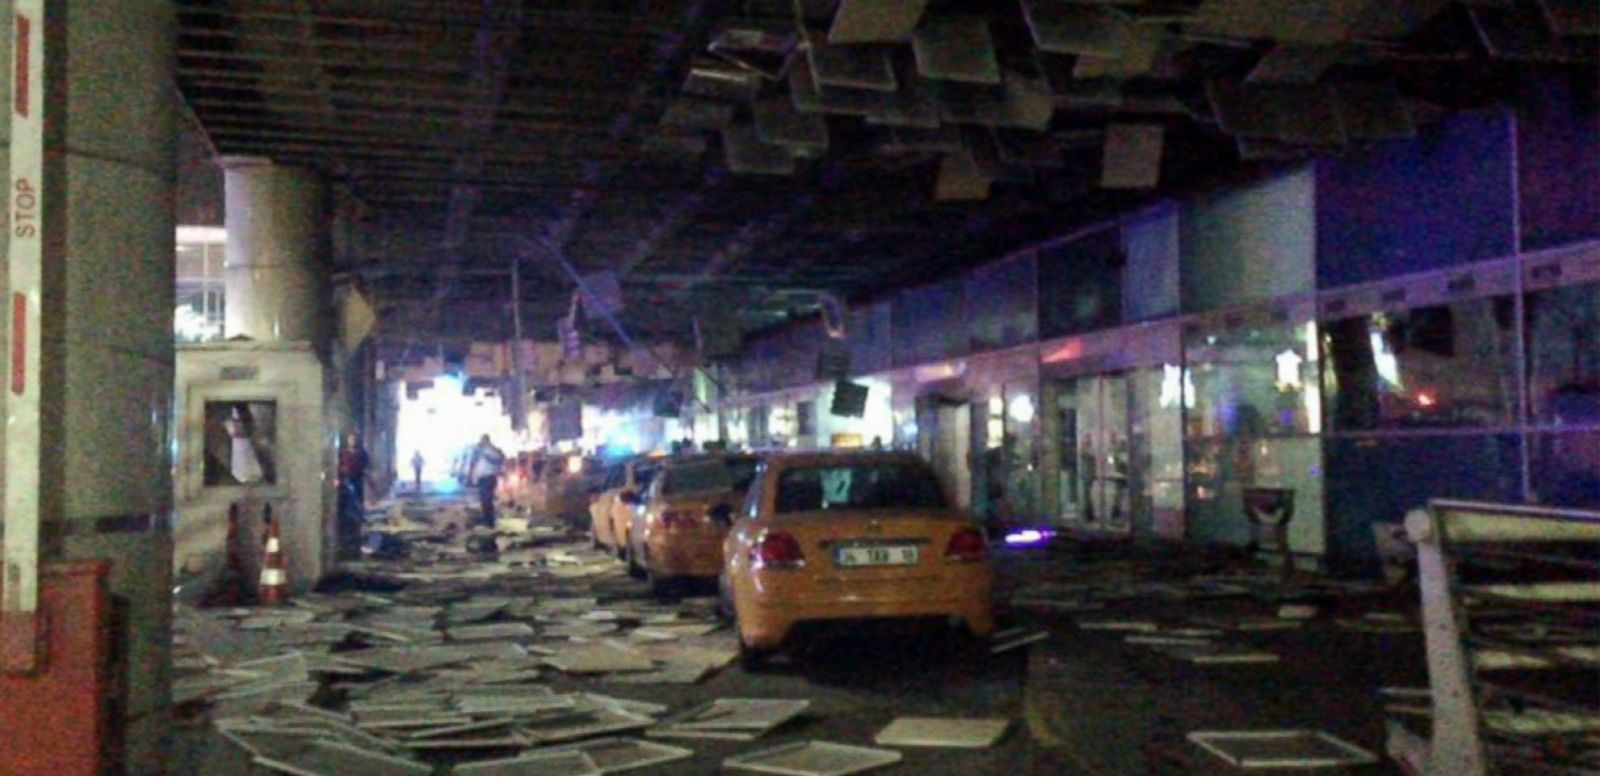 VIDEO: At Least 2 Dozen People Dead After Terror Attack at Istanbul Airport